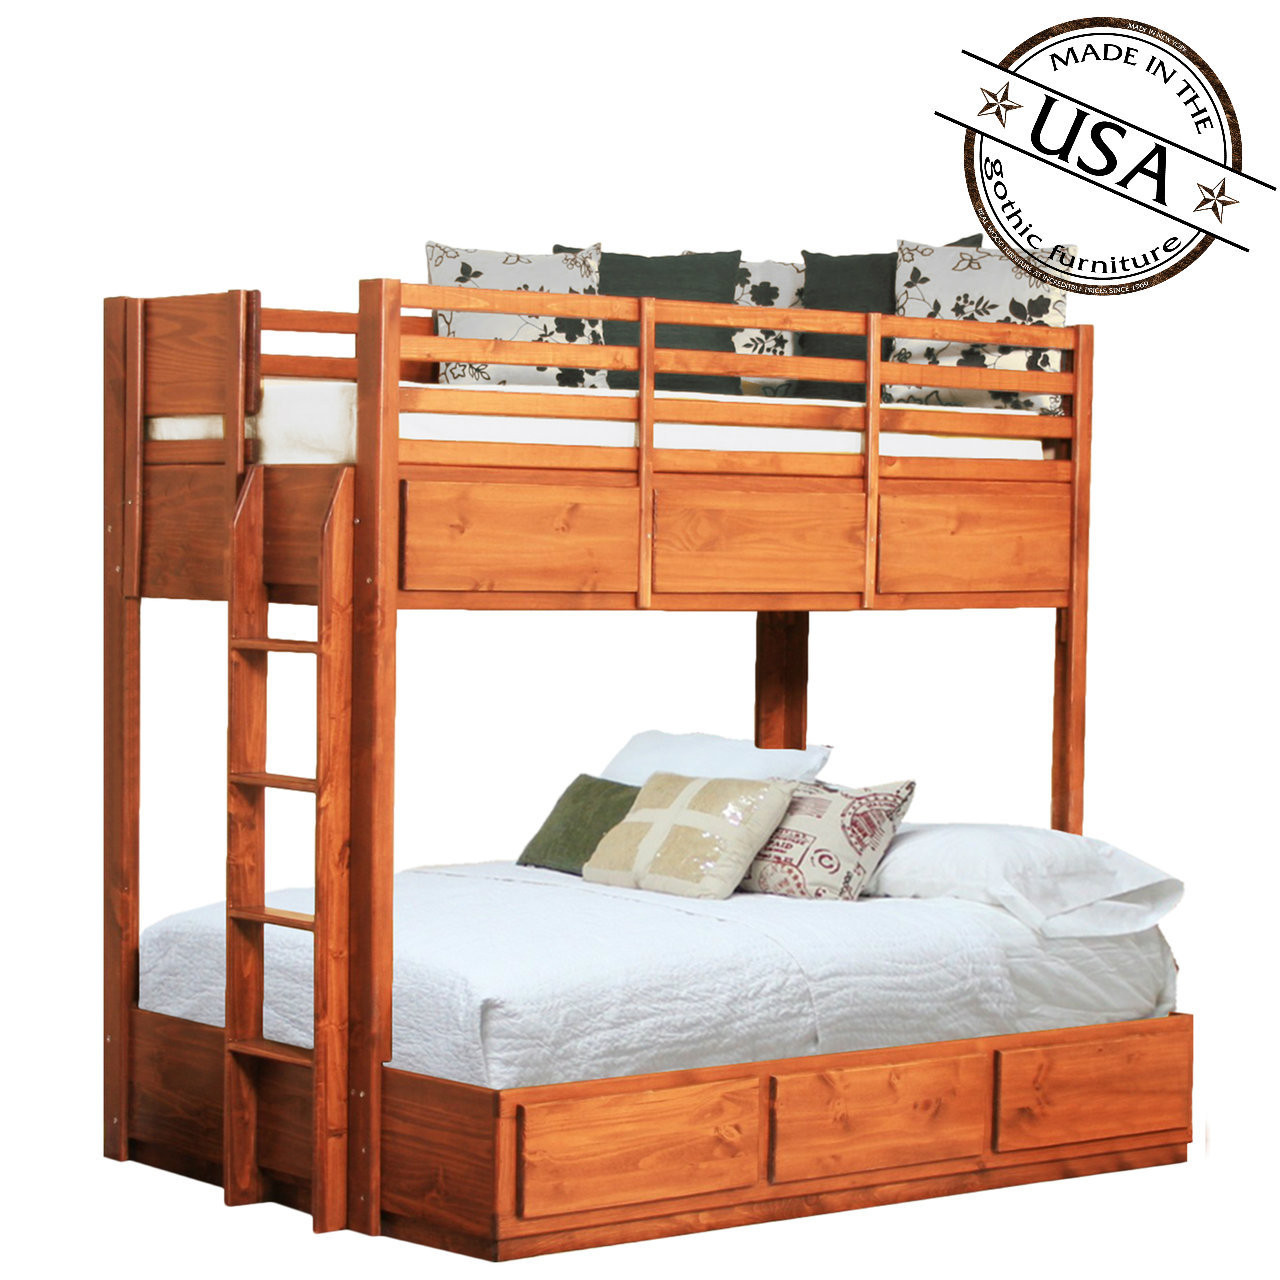 Special Loft Beds Gothic Gothic Cabinet Craft Dresser Gothic Cabinet Craft Elmsford Ny Twin Over Full Bunk Bed Pine All Categories Bedroom Beds Bunk houzz-02 Gothic Cabinet Craft